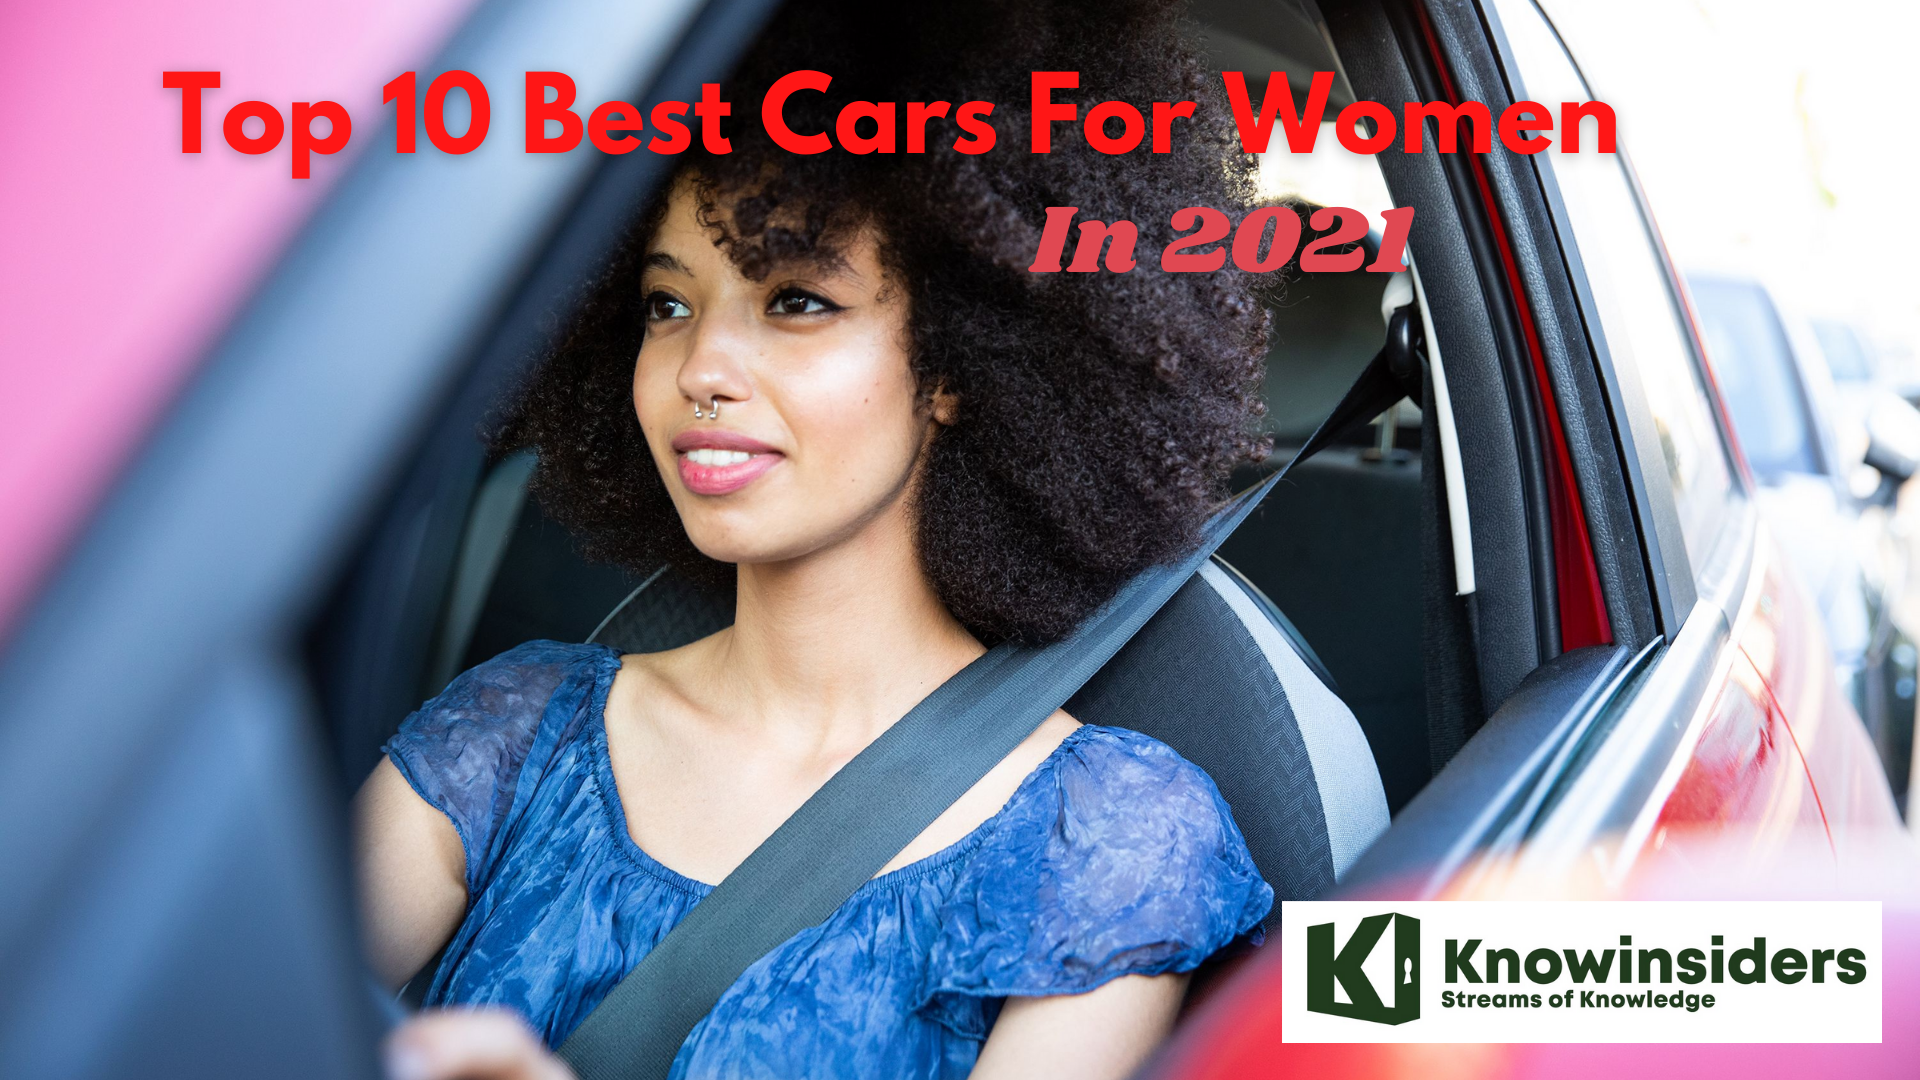 Top 10 Best Cars For Women in 2021/2022